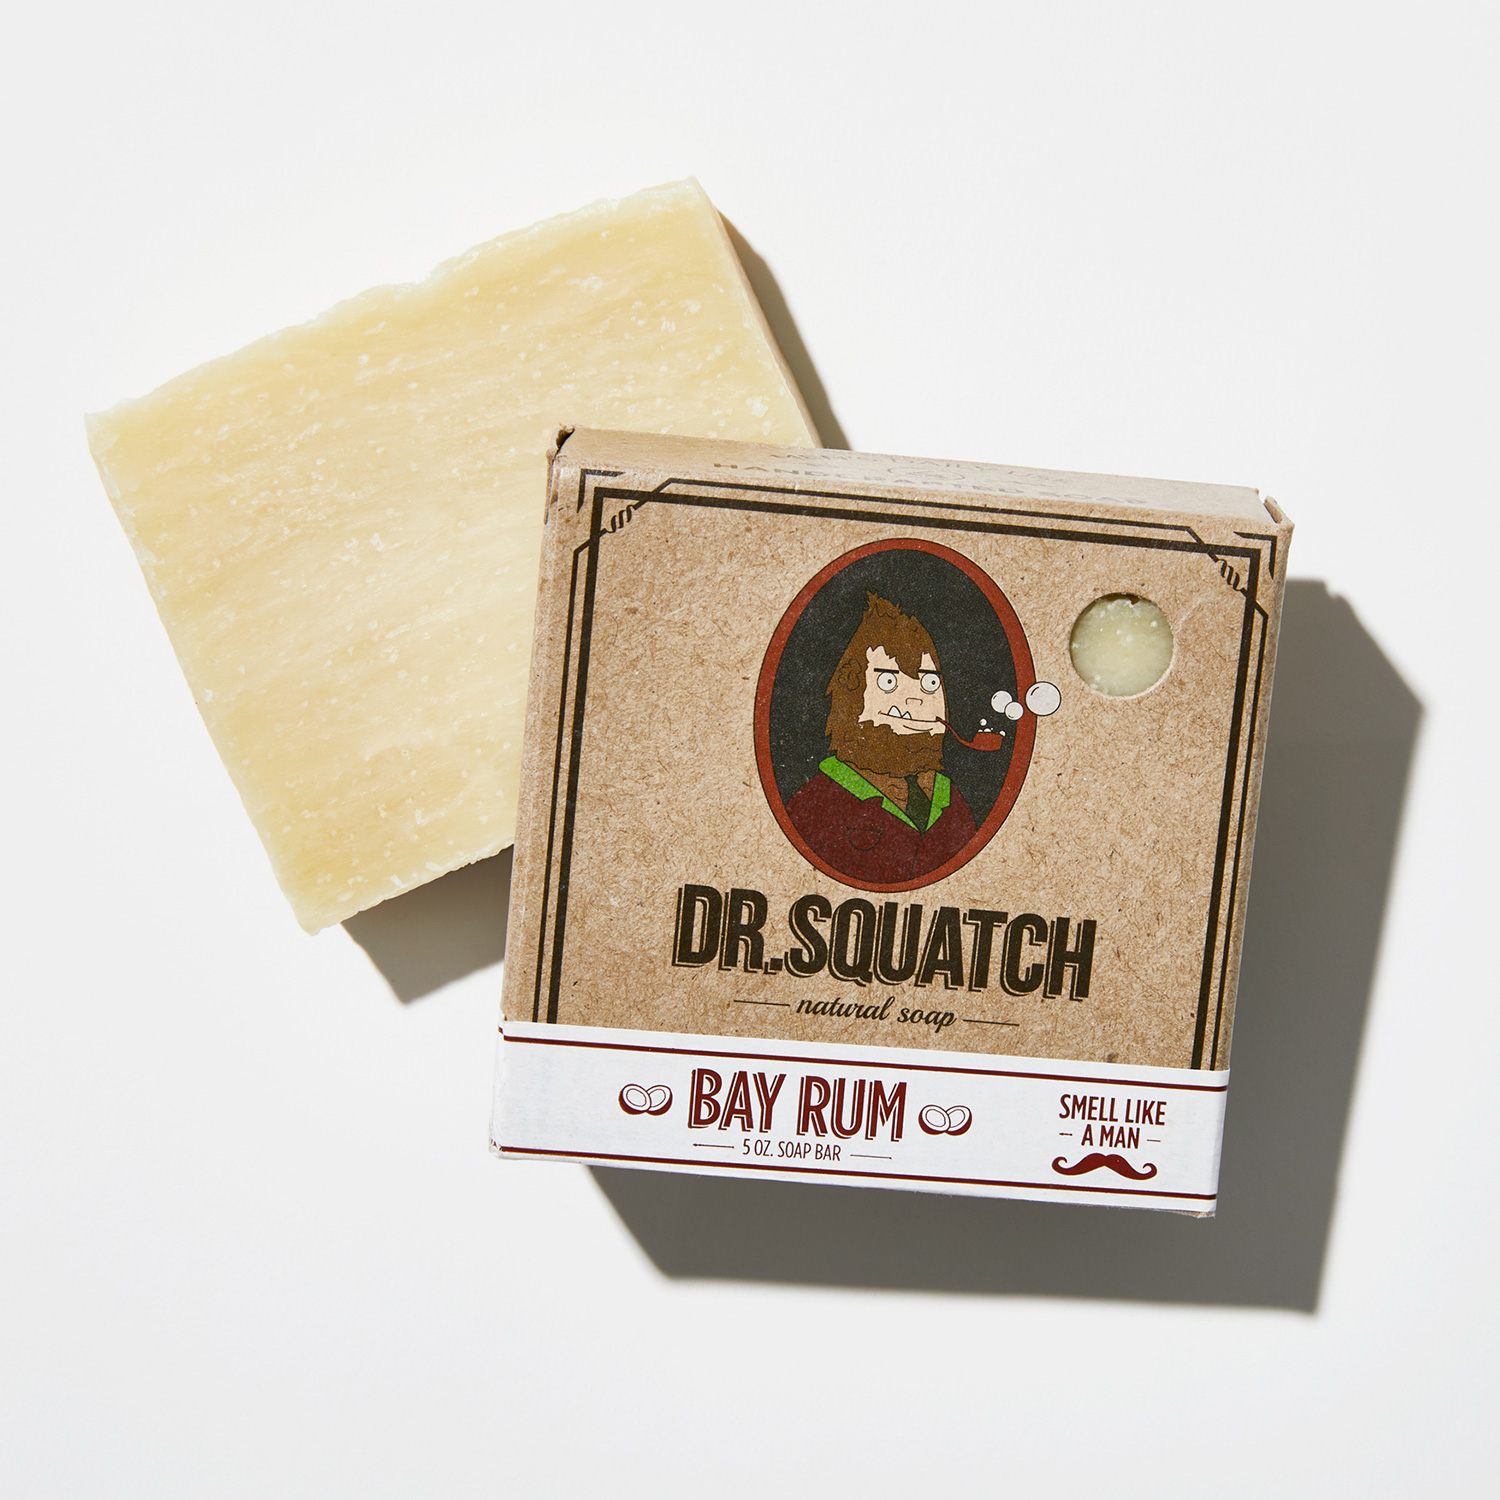 Dr. Squatch bay rum soap bar